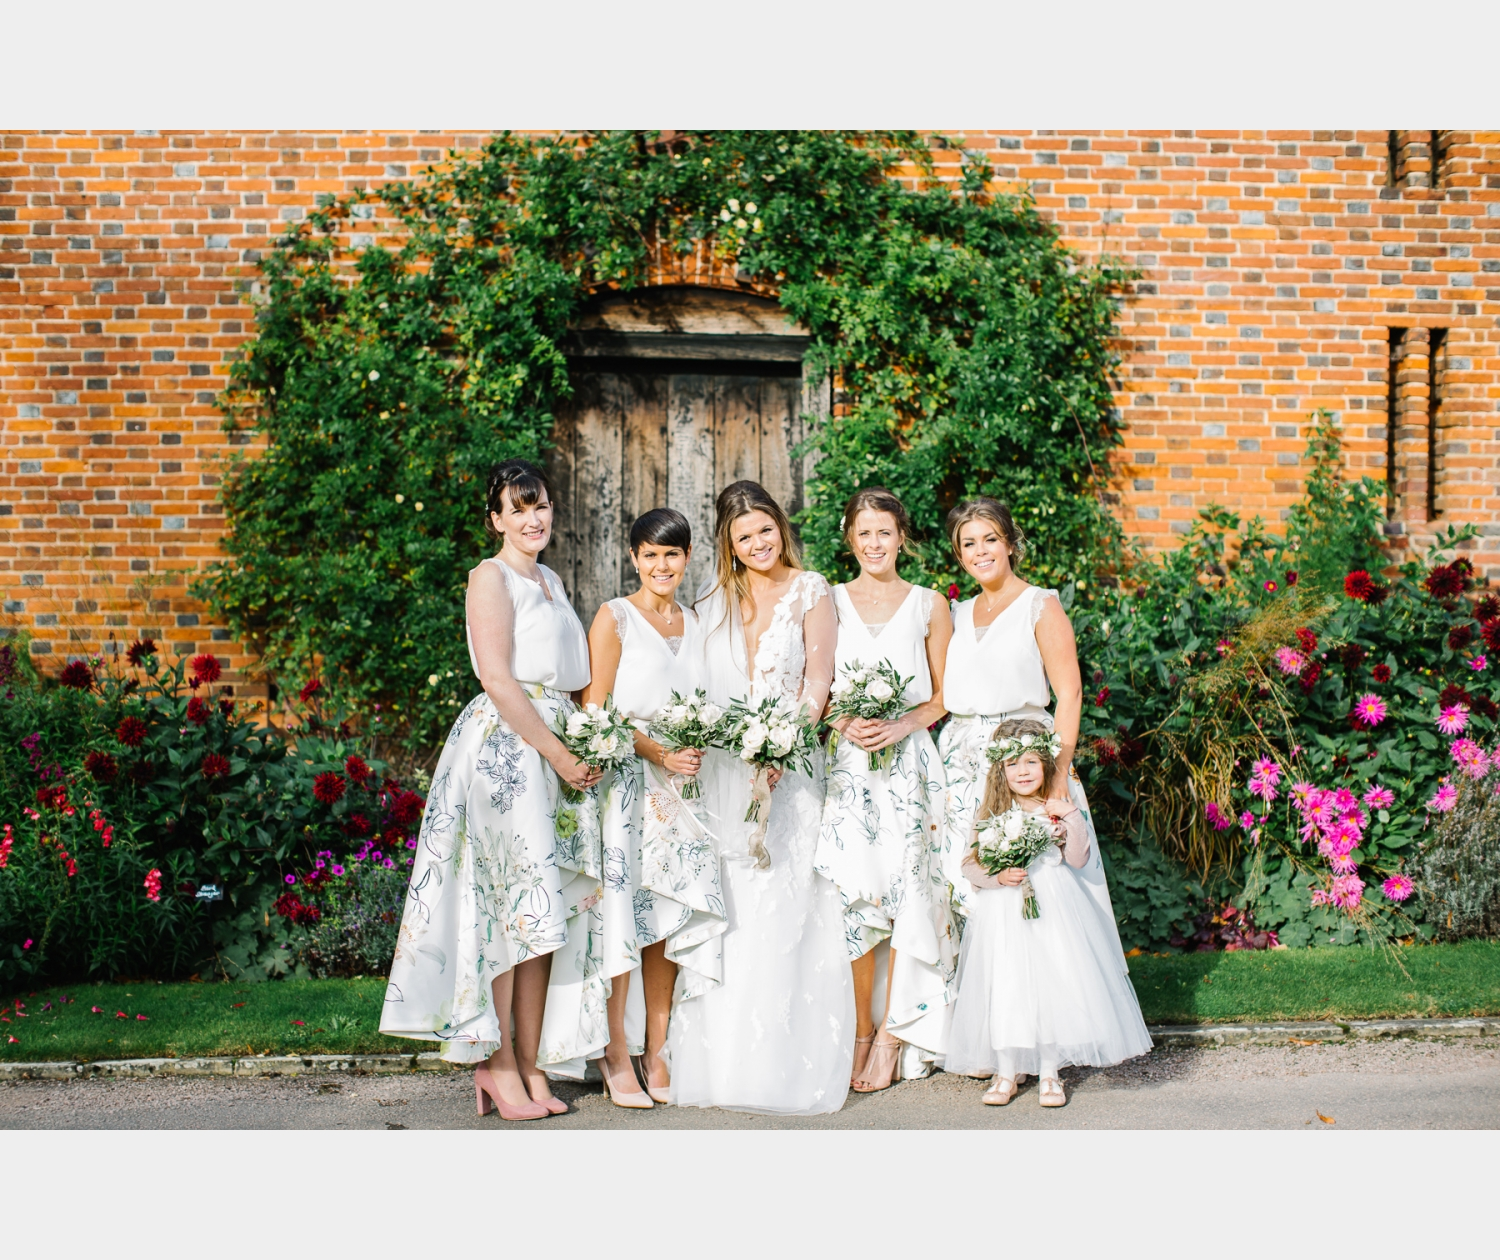 The Barn at Alswick Wedding Show